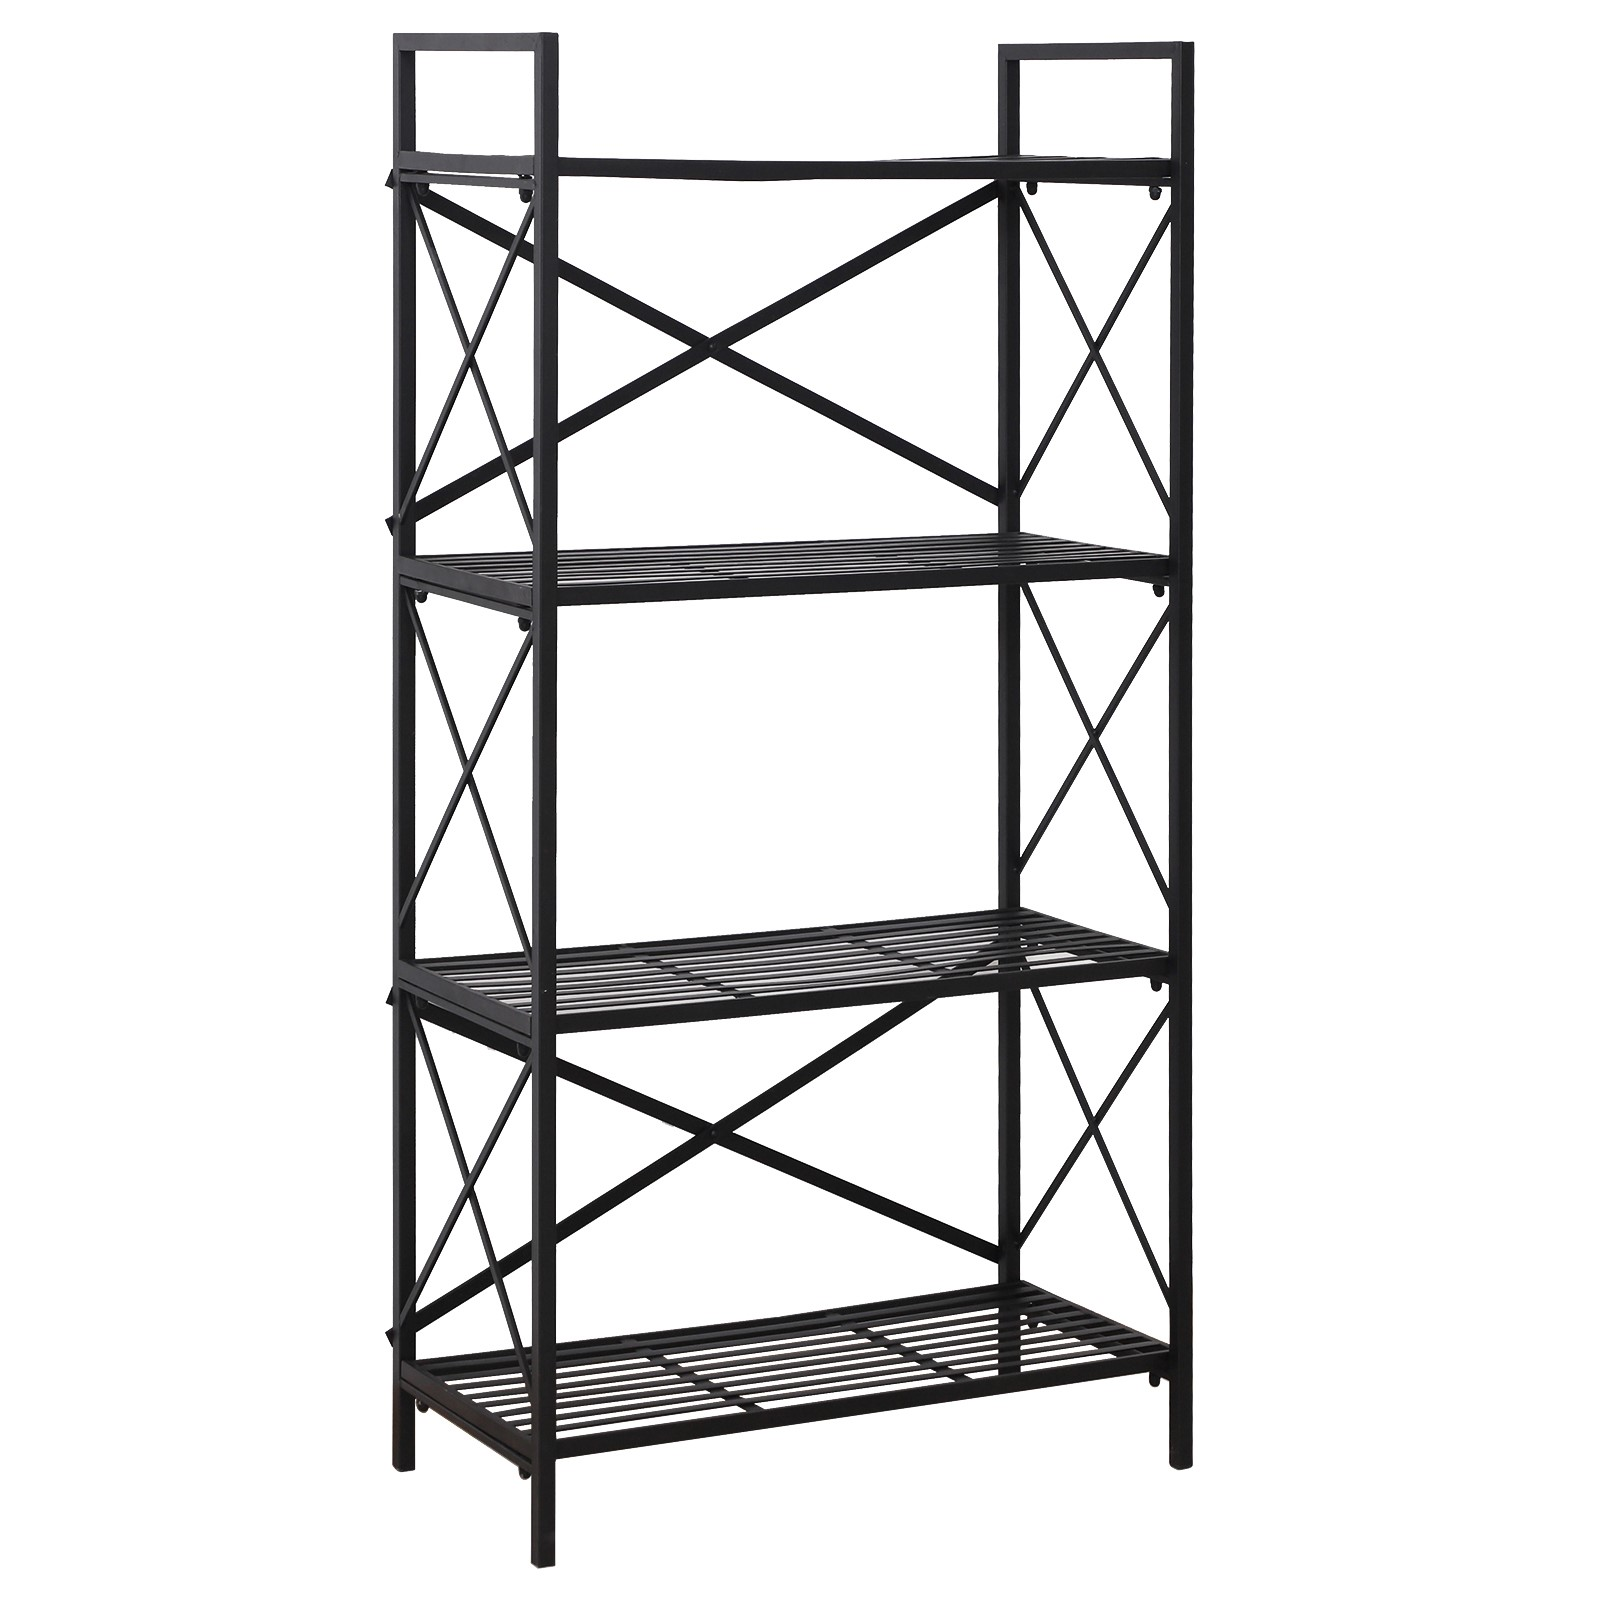 HOMCOM 4 Shelf Shelves Space Saving For House Office Garage Metal 80x40x160 Cm Black